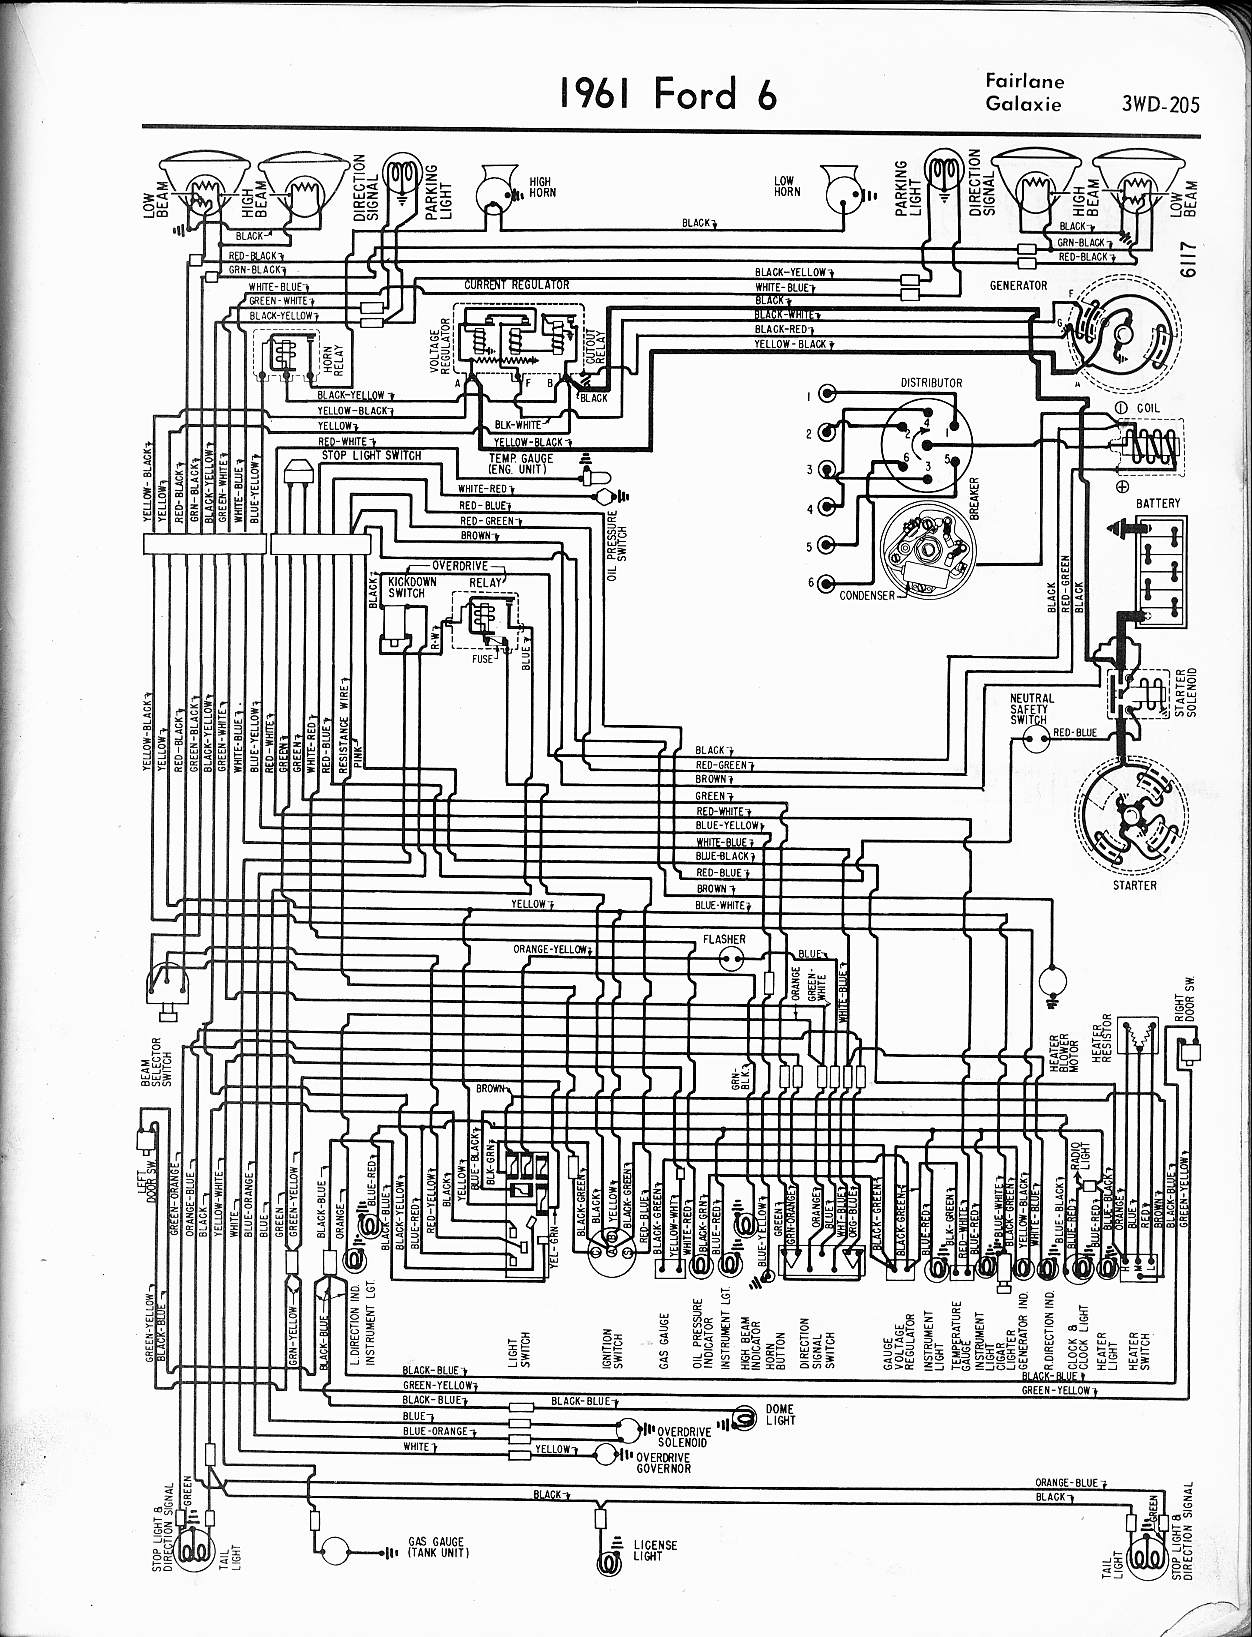 MWire5765 205 wiring diagram model a ford the wiring diagram readingrat net Ford E 350 Wiring Diagrams at n-0.co